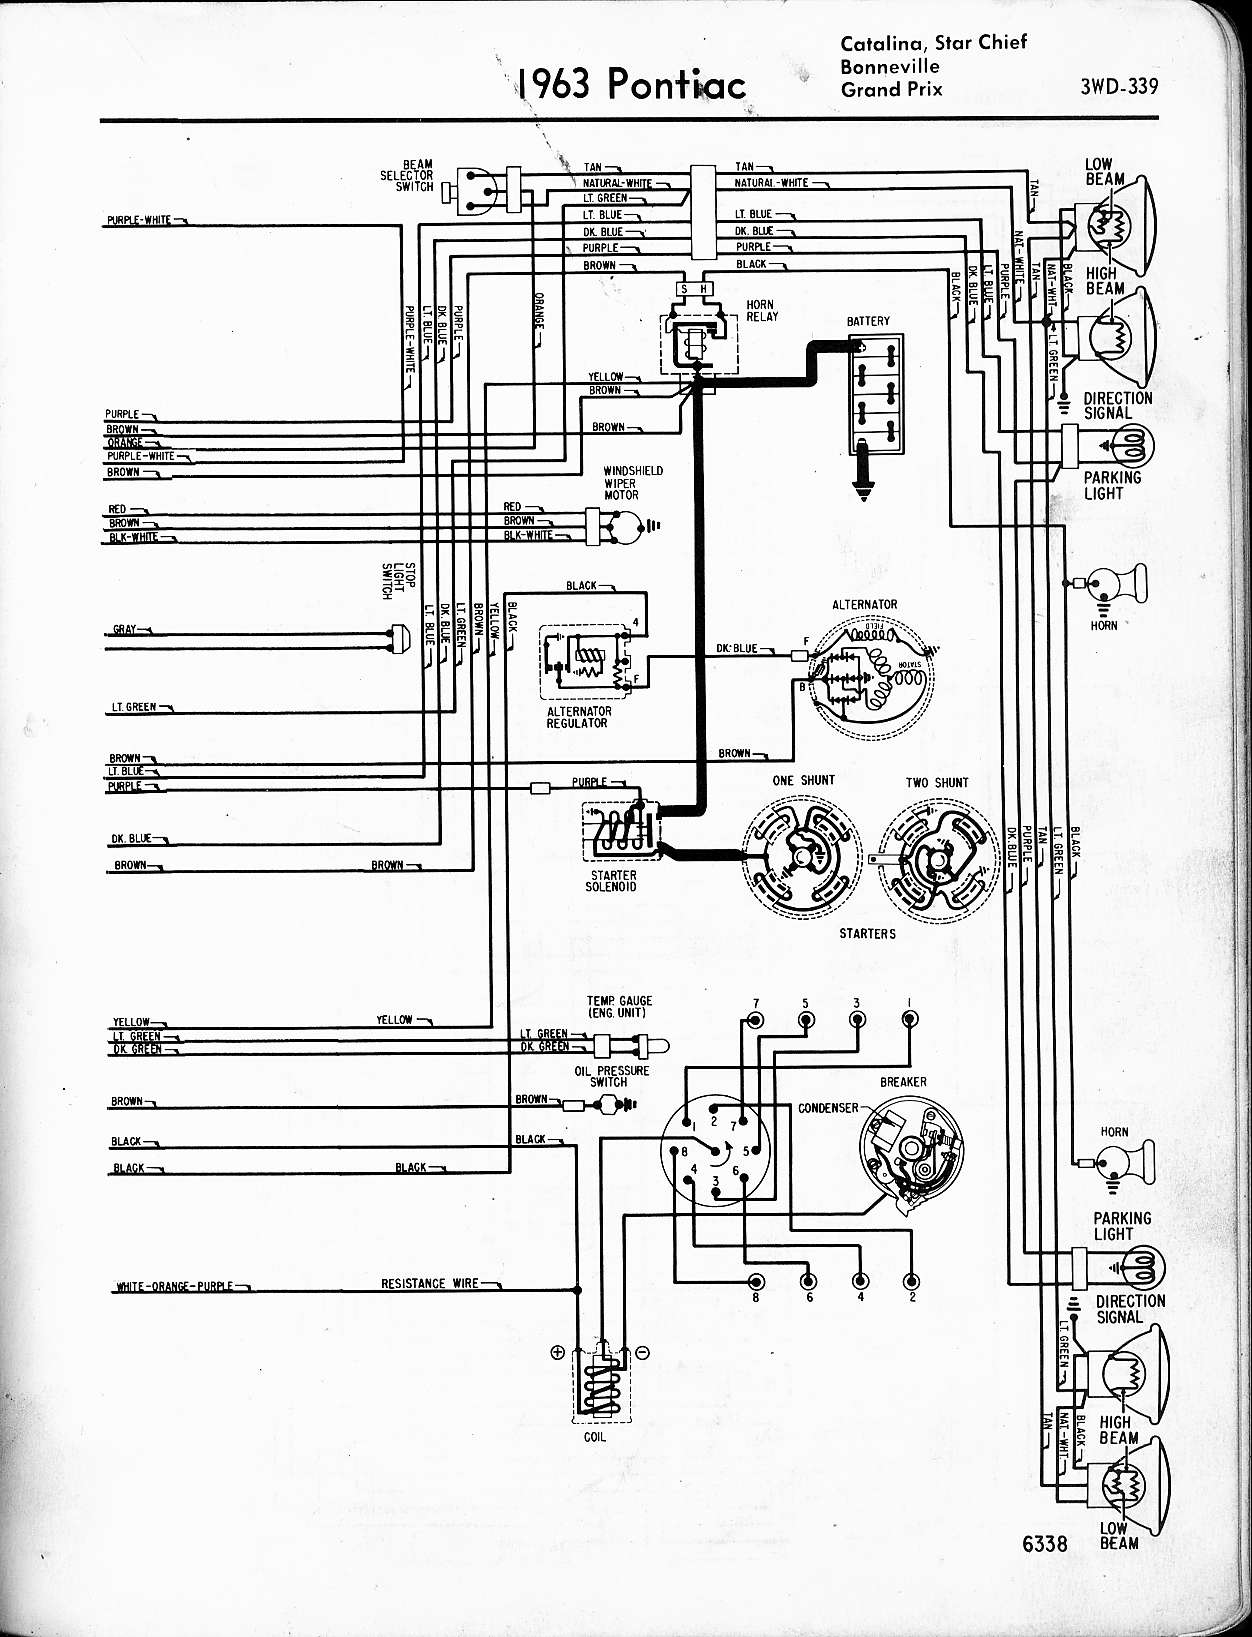 Wiring Diagram For 1963 Pontiac | Wiring Diagram on 68 chevy chevelle ss wiring-diagram, 1970 cutlass wiring-diagram, 66 mustang lights wiring-diagram,